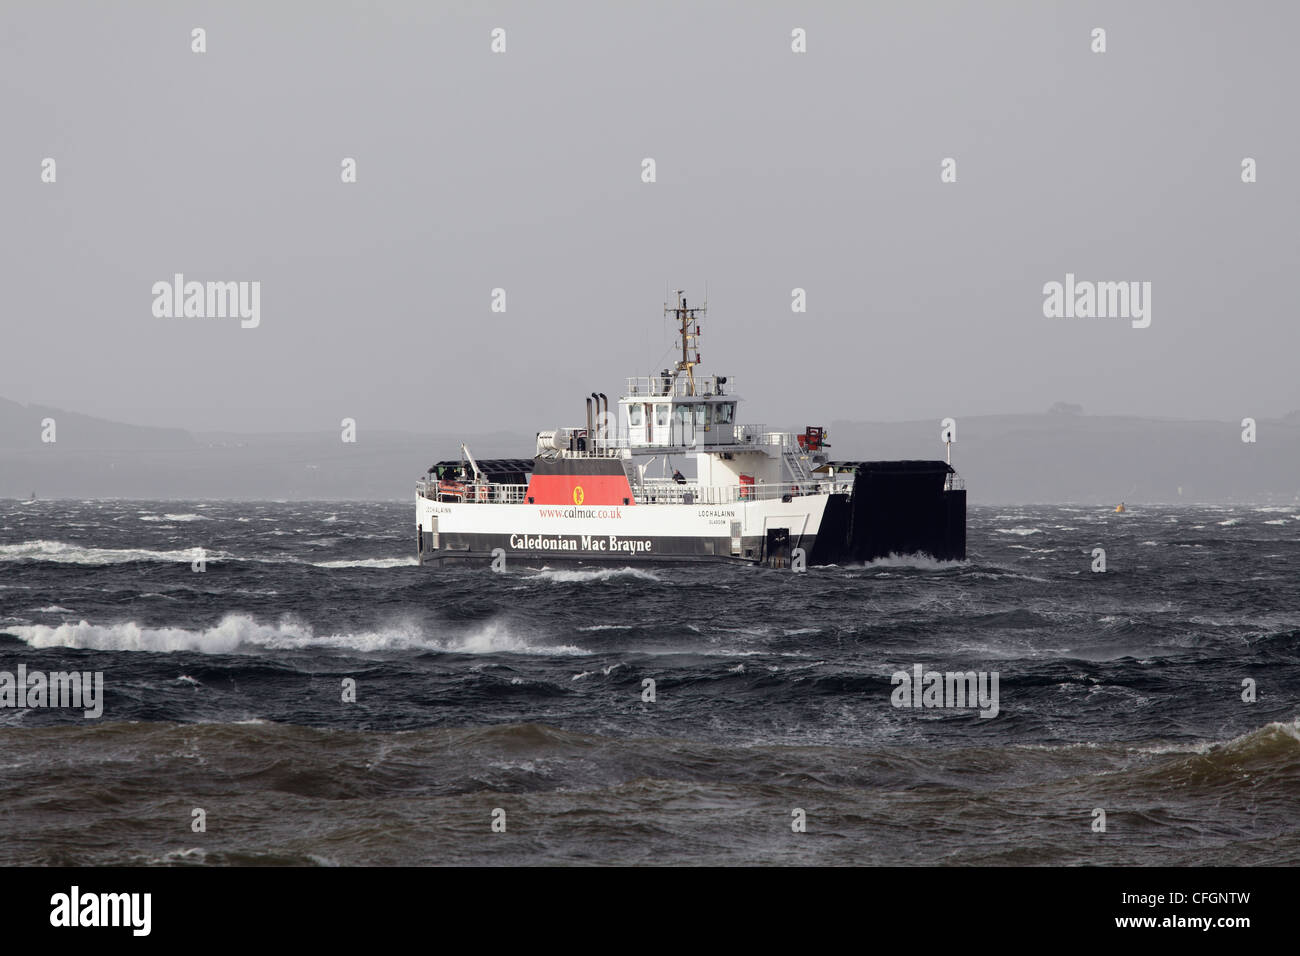 The Calmac Ferry Loch Alainn in bad weather approaching Largs from Great Cumbrae on the River Clyde Ayrshire Scotland - Stock Image